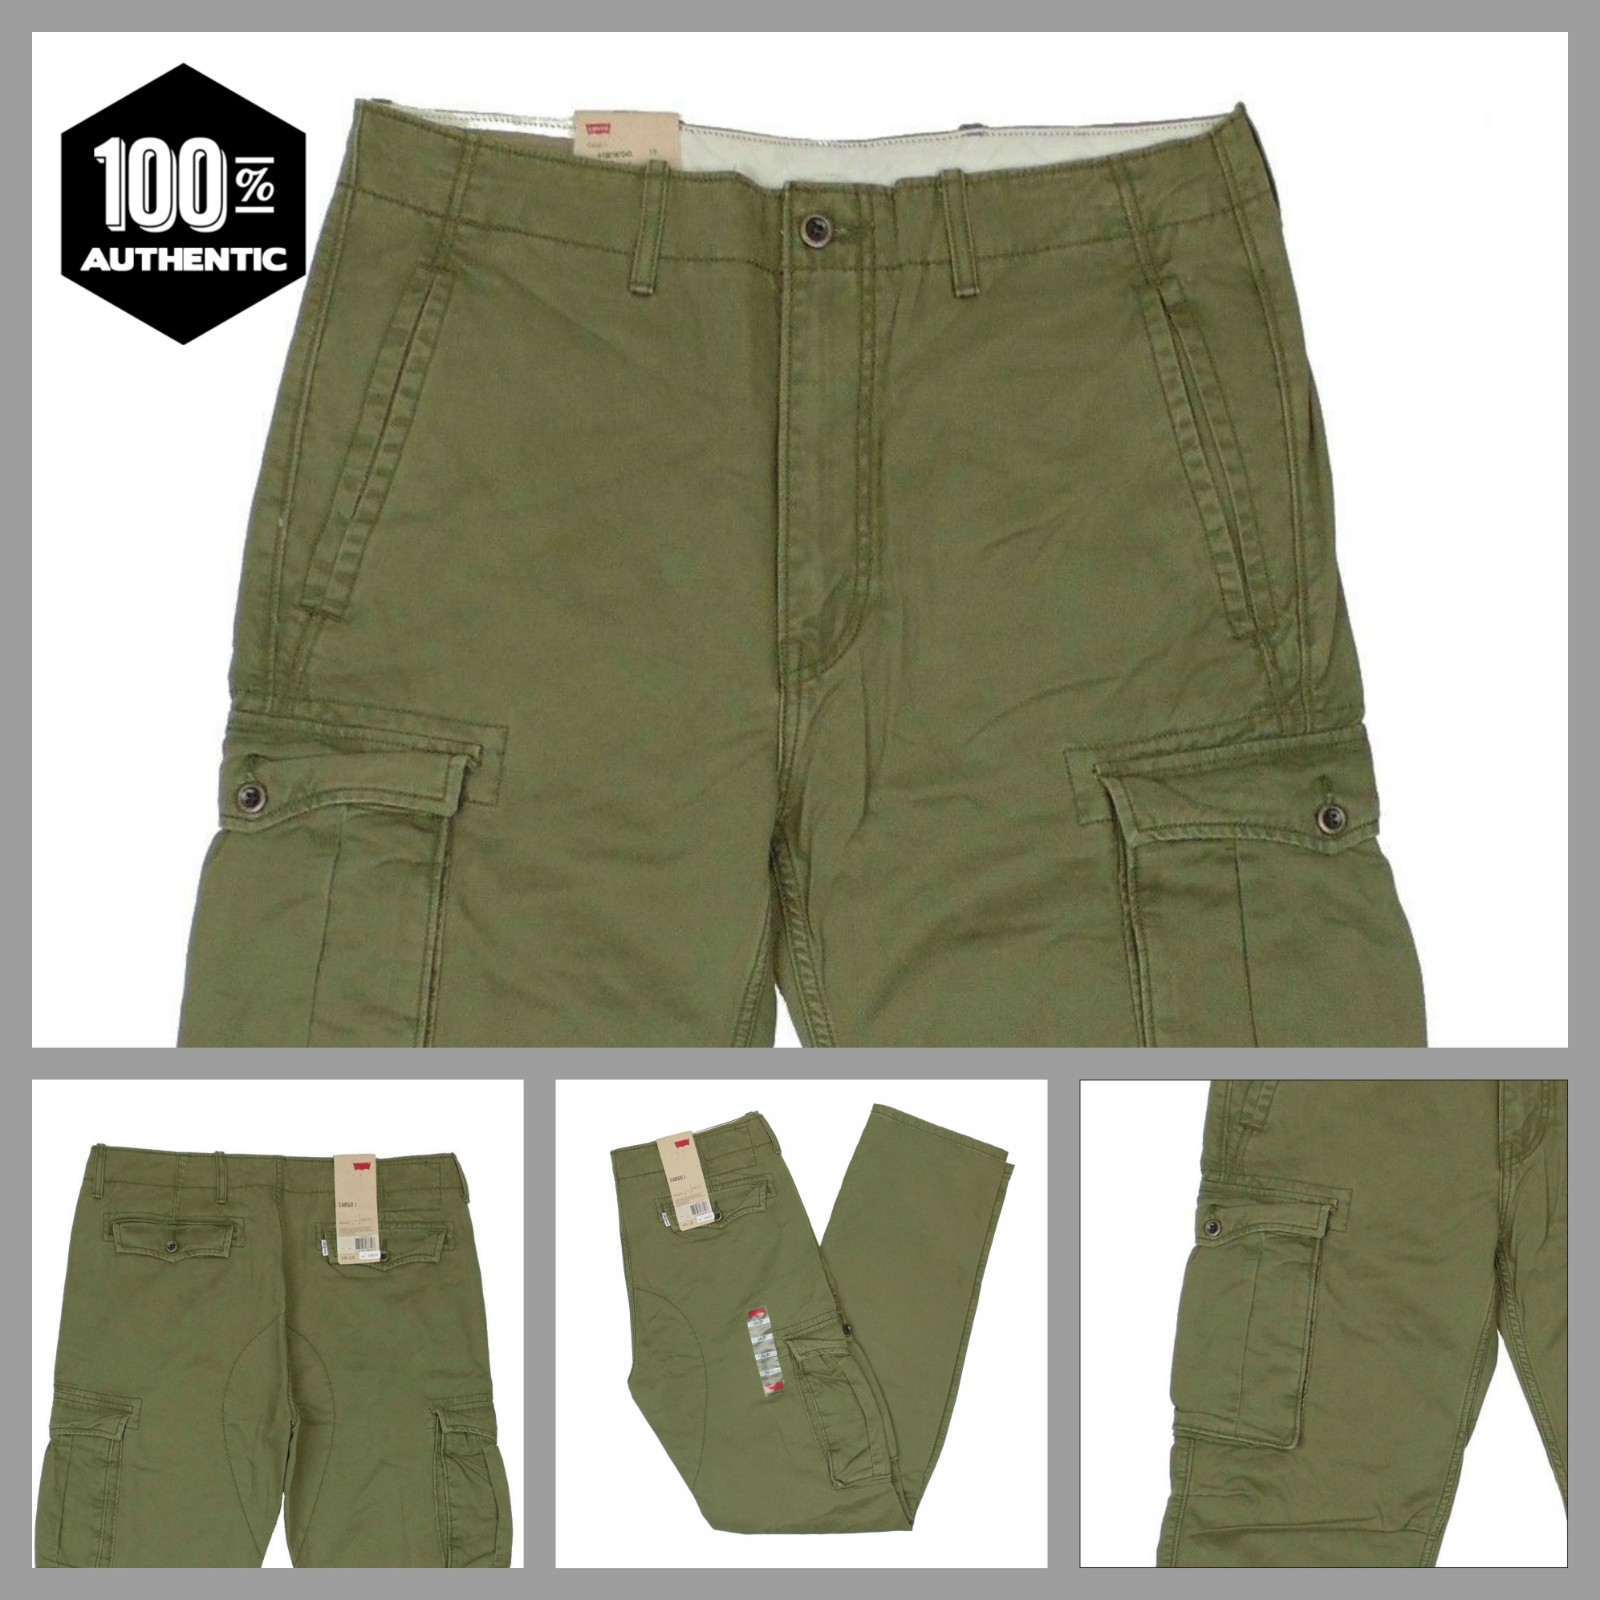 a62b3acb42 Details about Levis Ace Cargo Pants Ivy Green Mens Relaxed Fit 100% Cotton  MANY SIZES NEW